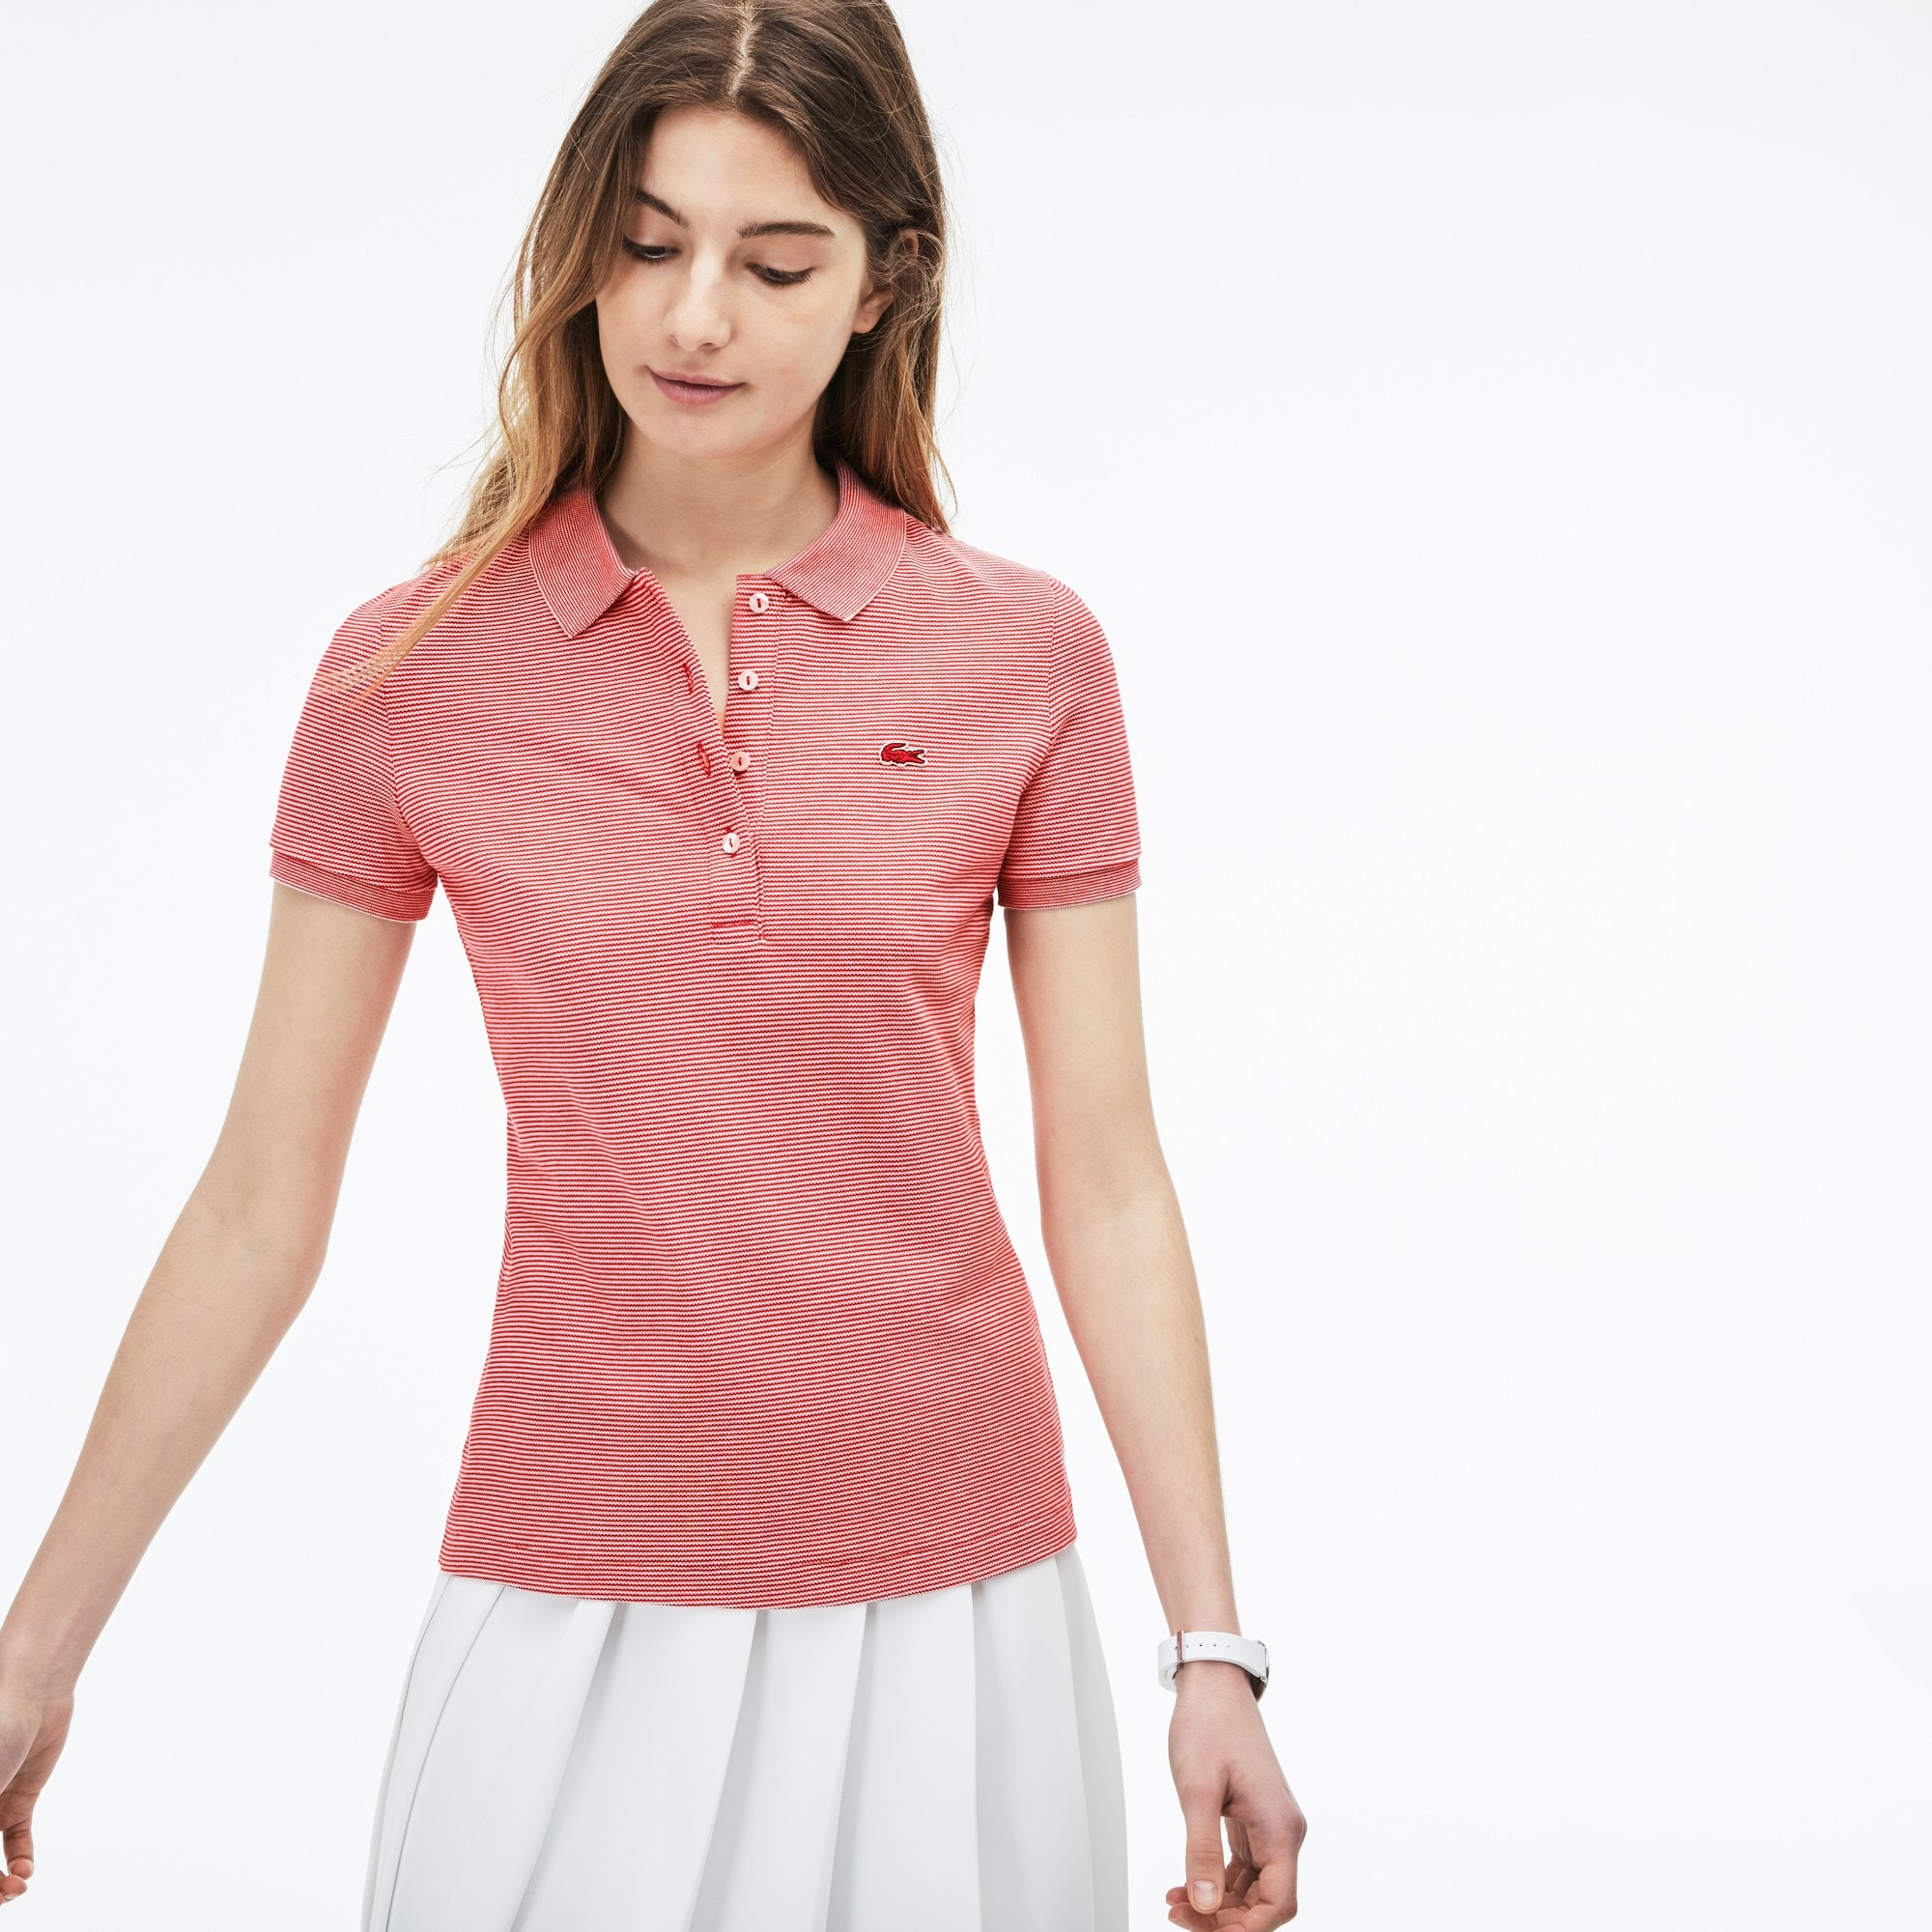 073491d21db28c Women s Lacoste Slim Fit Pinstriped Stretch Mini Piqué Polo Shirt ...